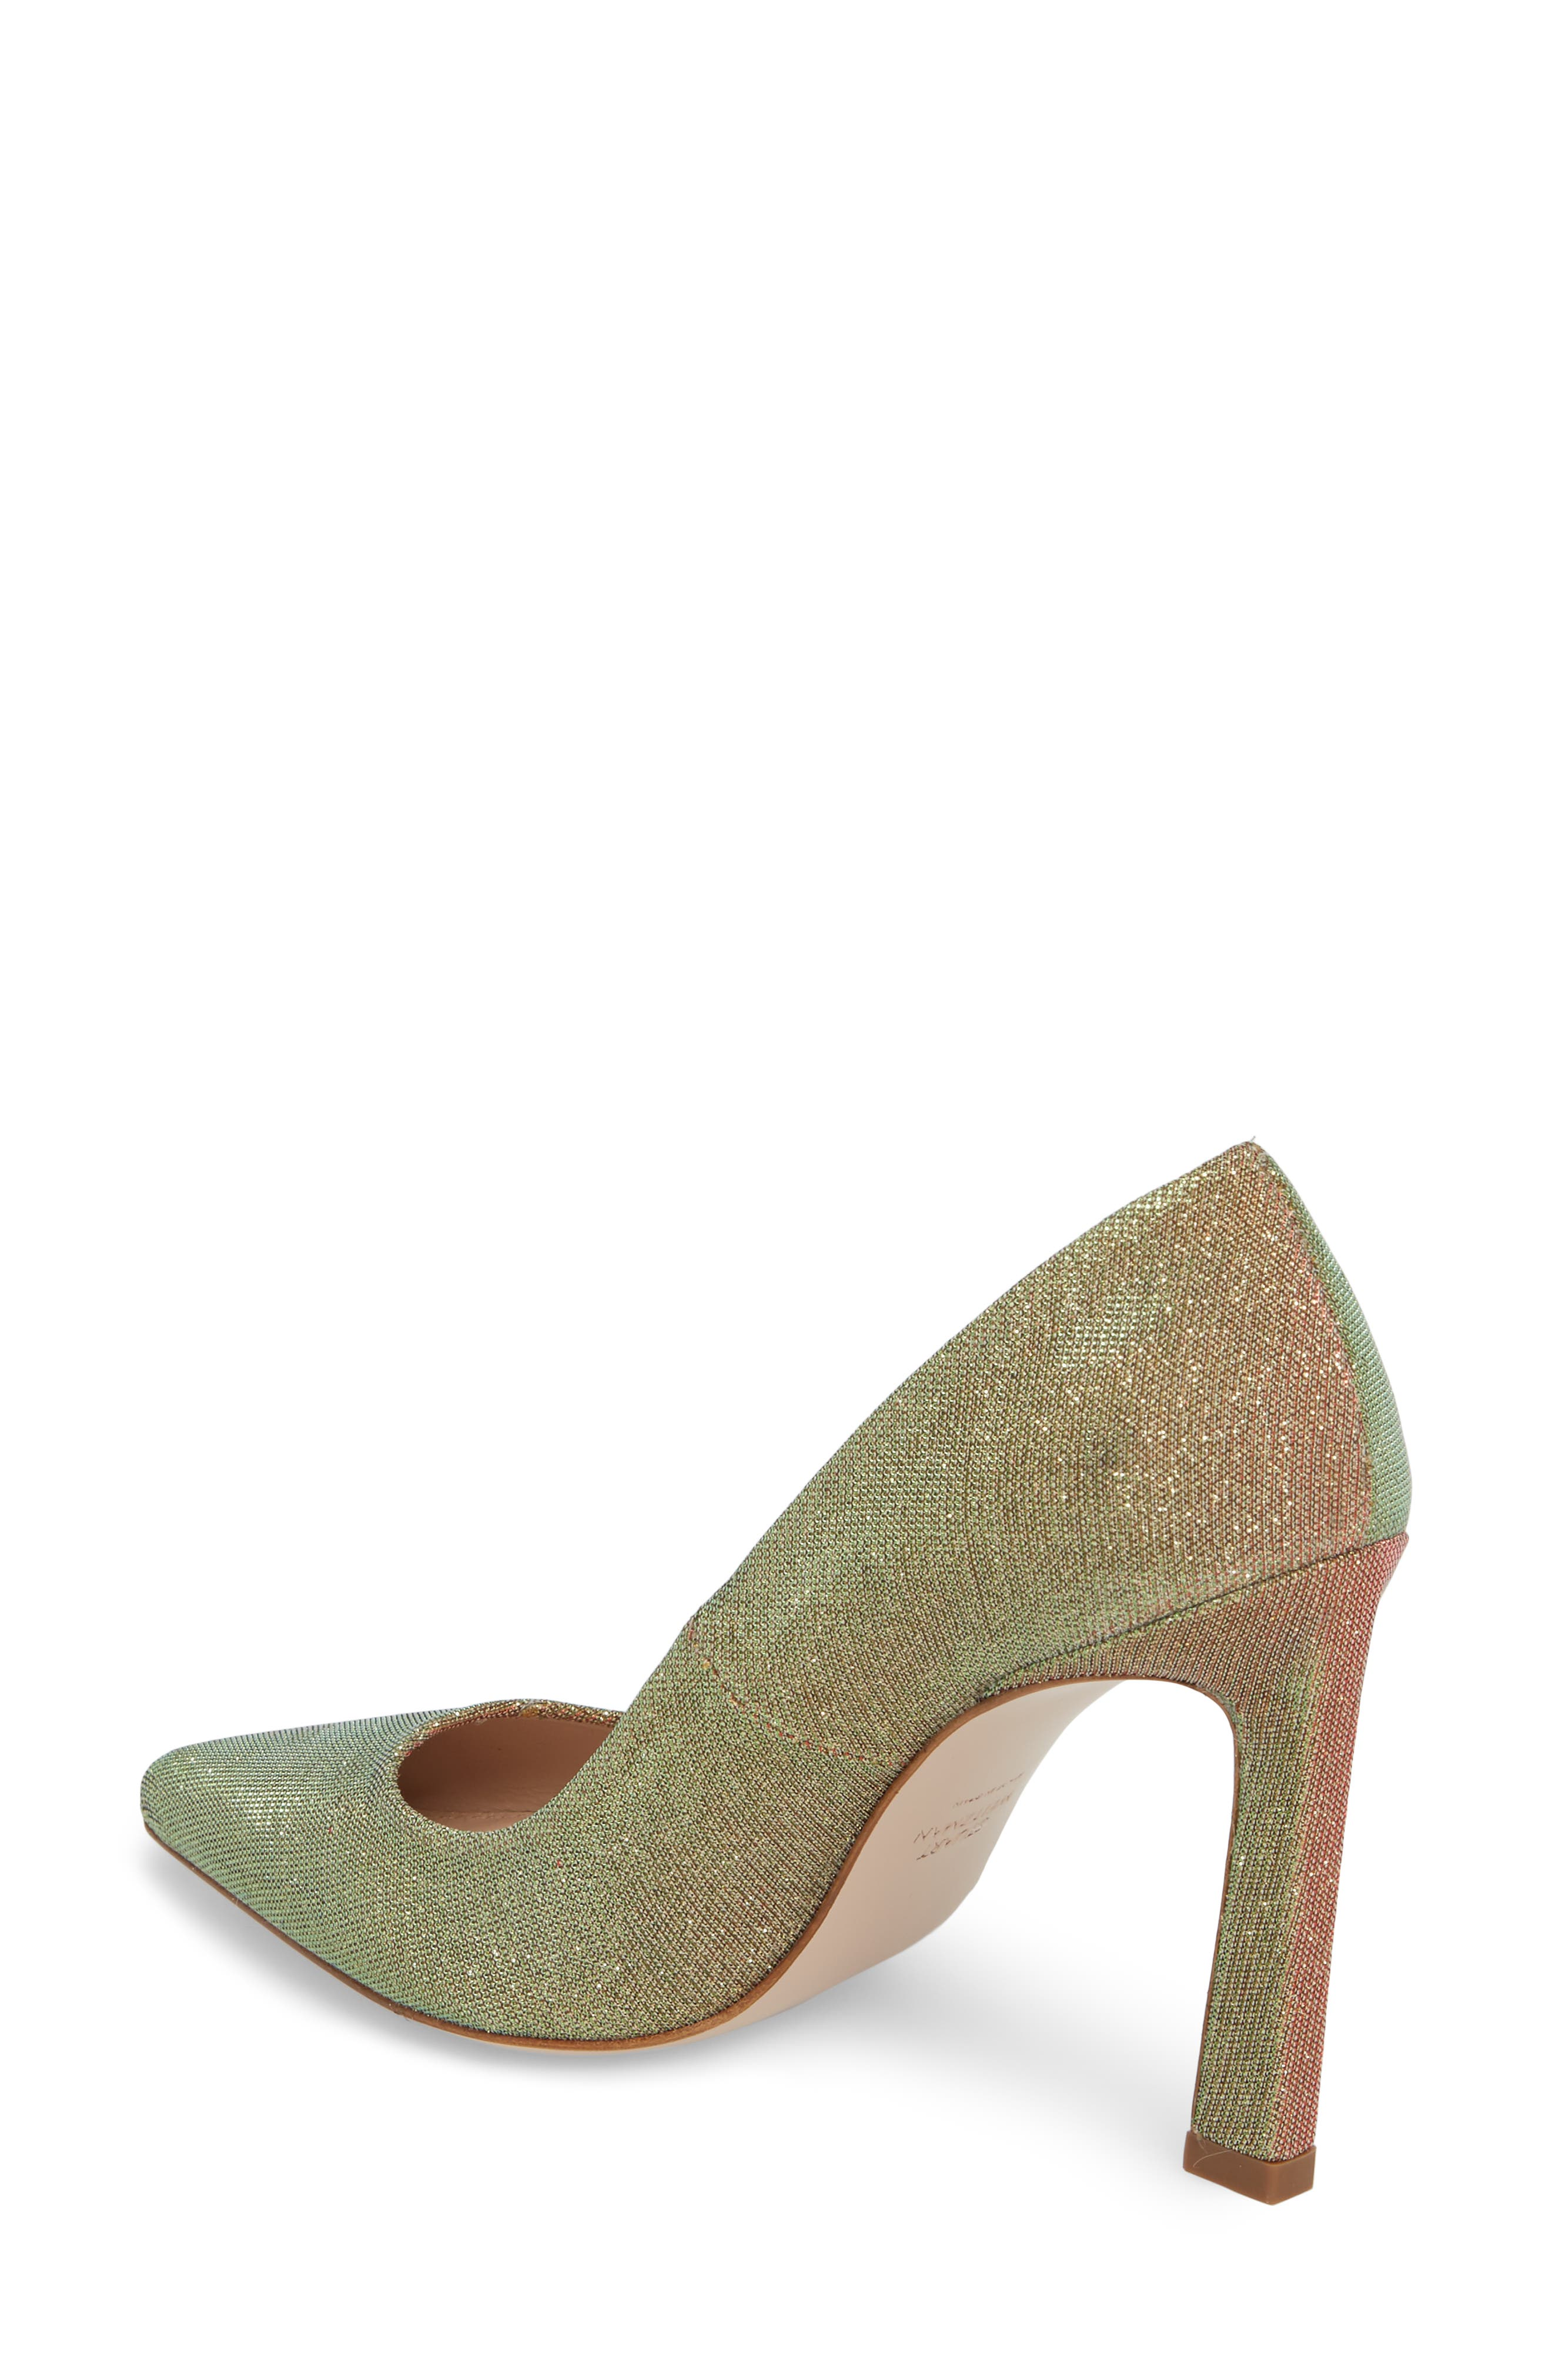 Chicster Pointy Toe Pump,                             Alternate thumbnail 2, color,                             Gold Multi Nighttime